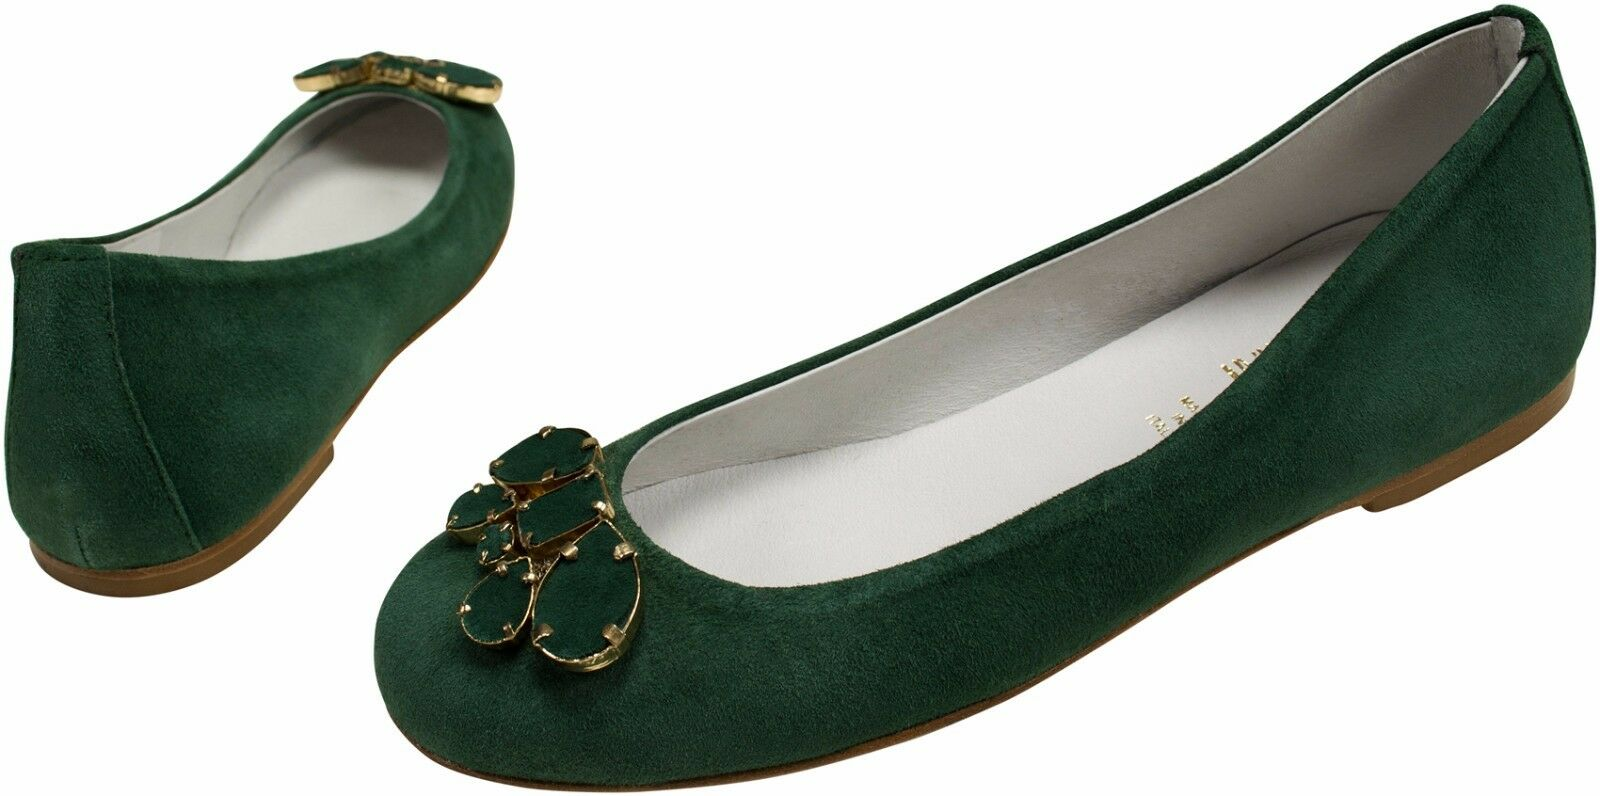 Ballerina Leather Dark verde Goat Leather oroen metal elements Leather Dark verde